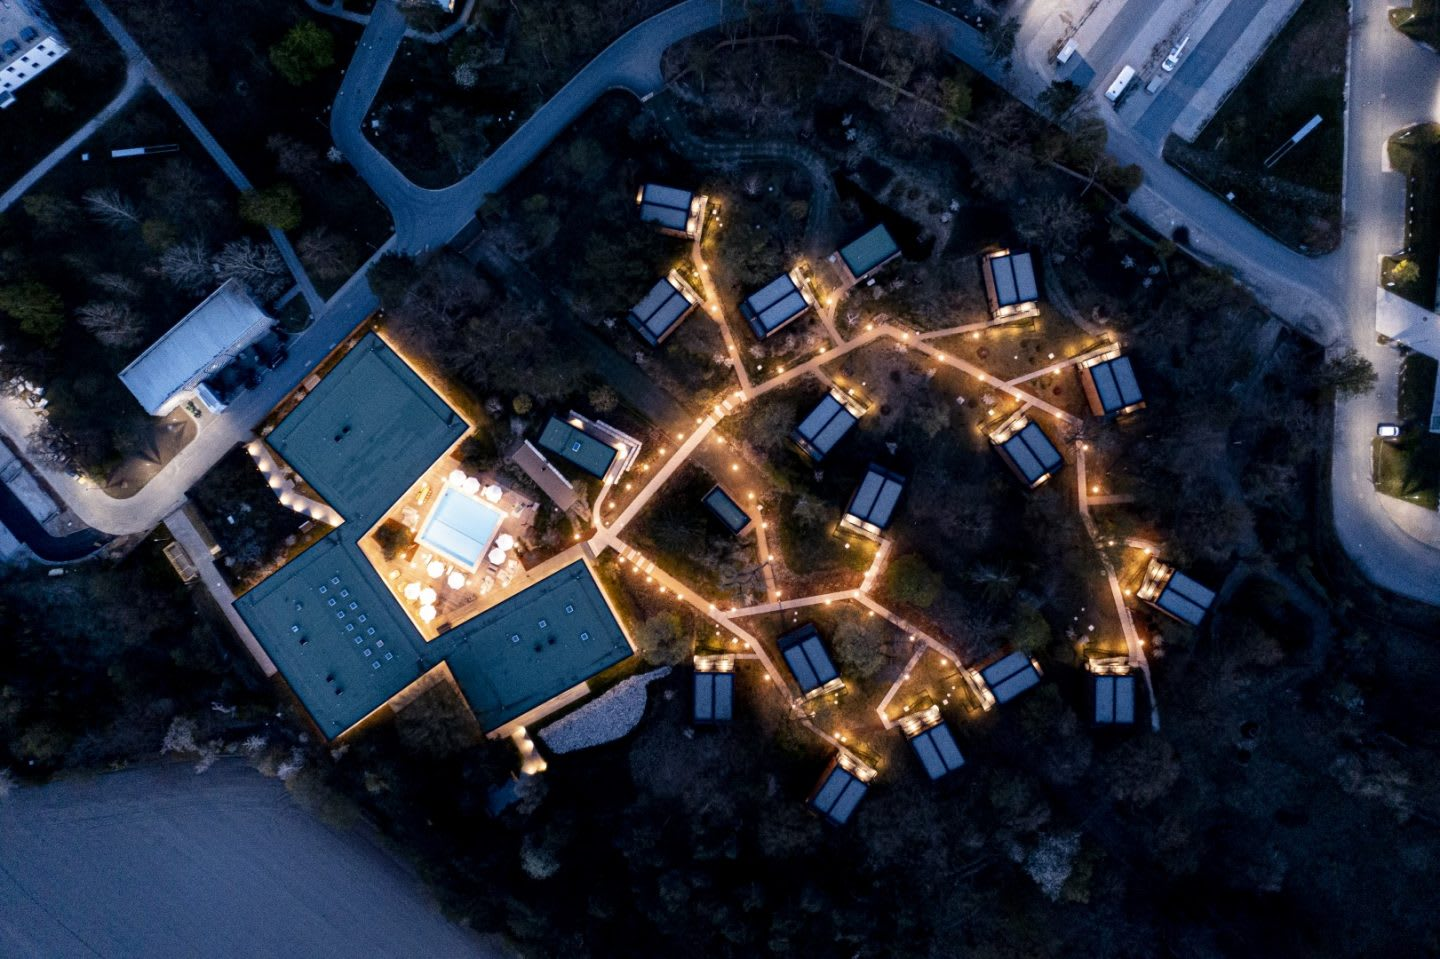 The stay of the Germany national football team at night from above. Home Ground, football, teamwork, adidas headquarters, GamePlan A.